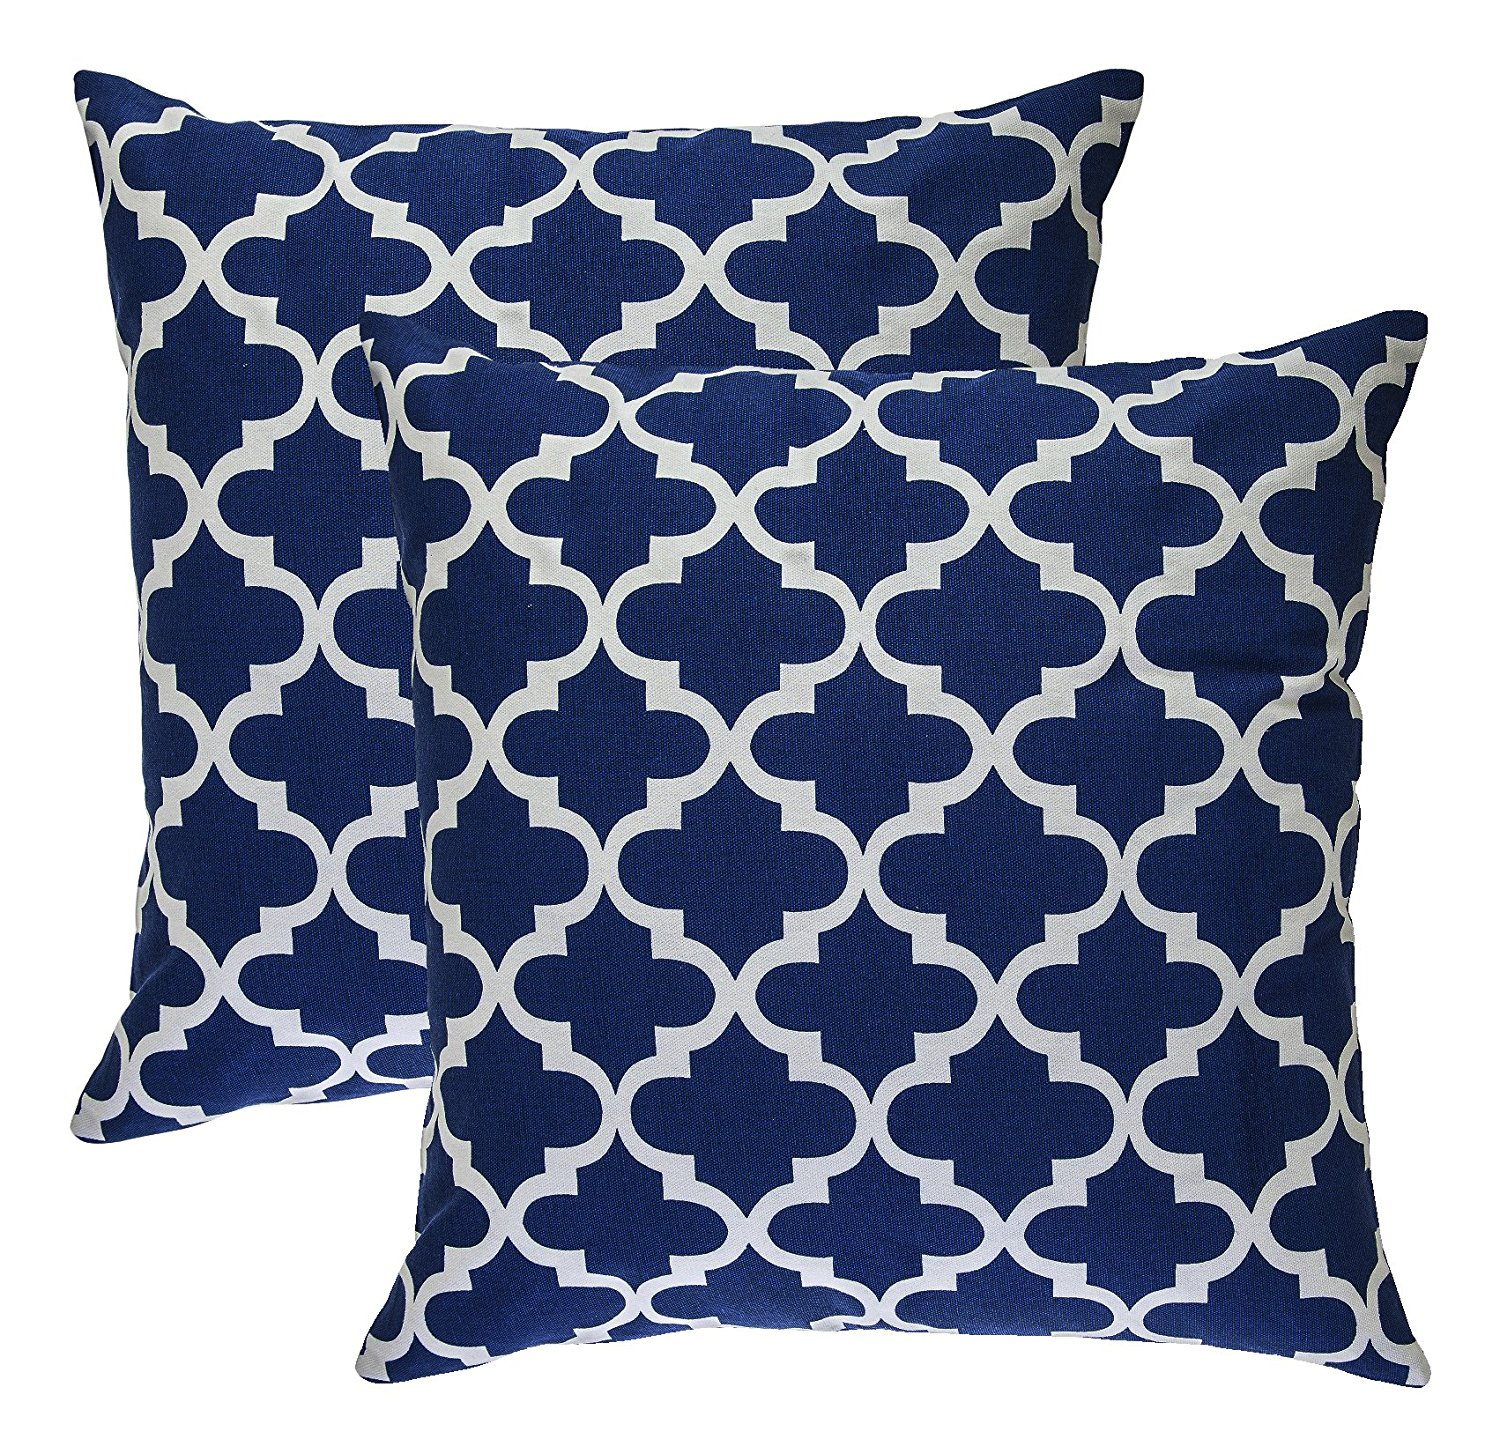 White Throw Pillows Covers : Decorative Blue and White Pillows Covers for Ornamental Accents Decor on The Line